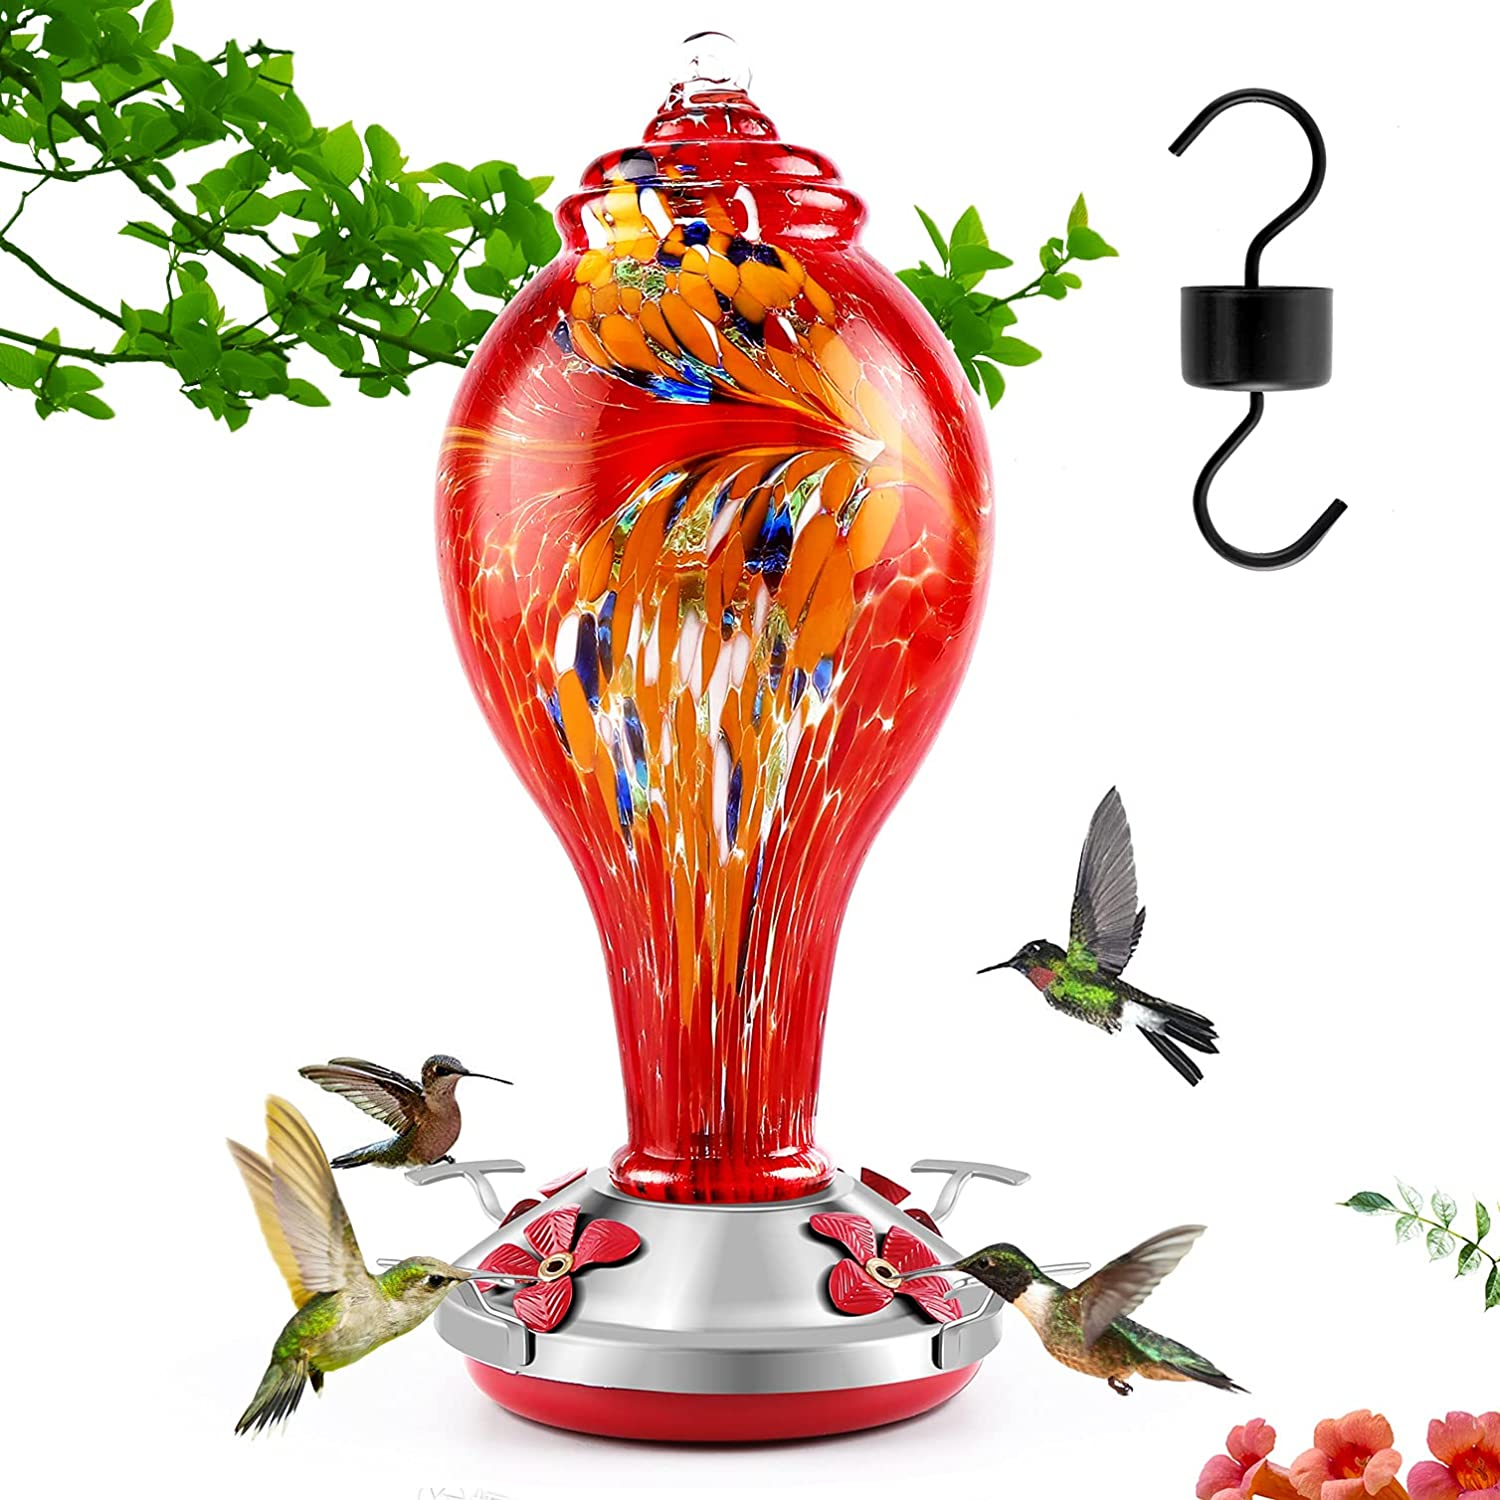 Hummingbird Feeders for Outdoors,Hand Blown Glass Hummingbird Feeder,Never Fade 36 Ounces,Clean&Fill Easily,Best Color Hanging Garden Yard Decoration S Hook Brush Moat Red